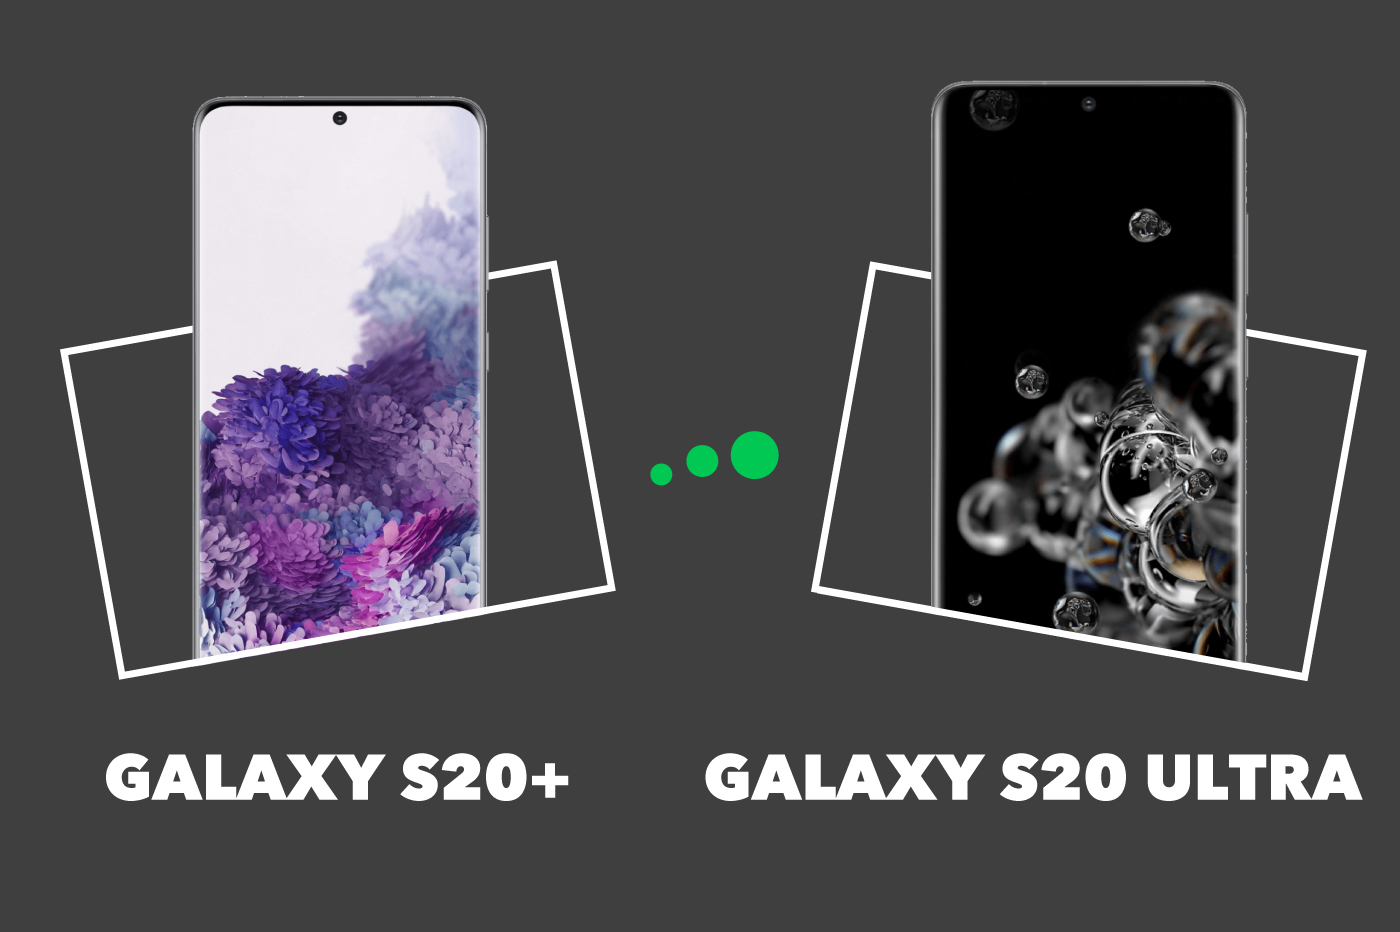 galaxy-s20-plus-vs-galaxy-s20-ultra